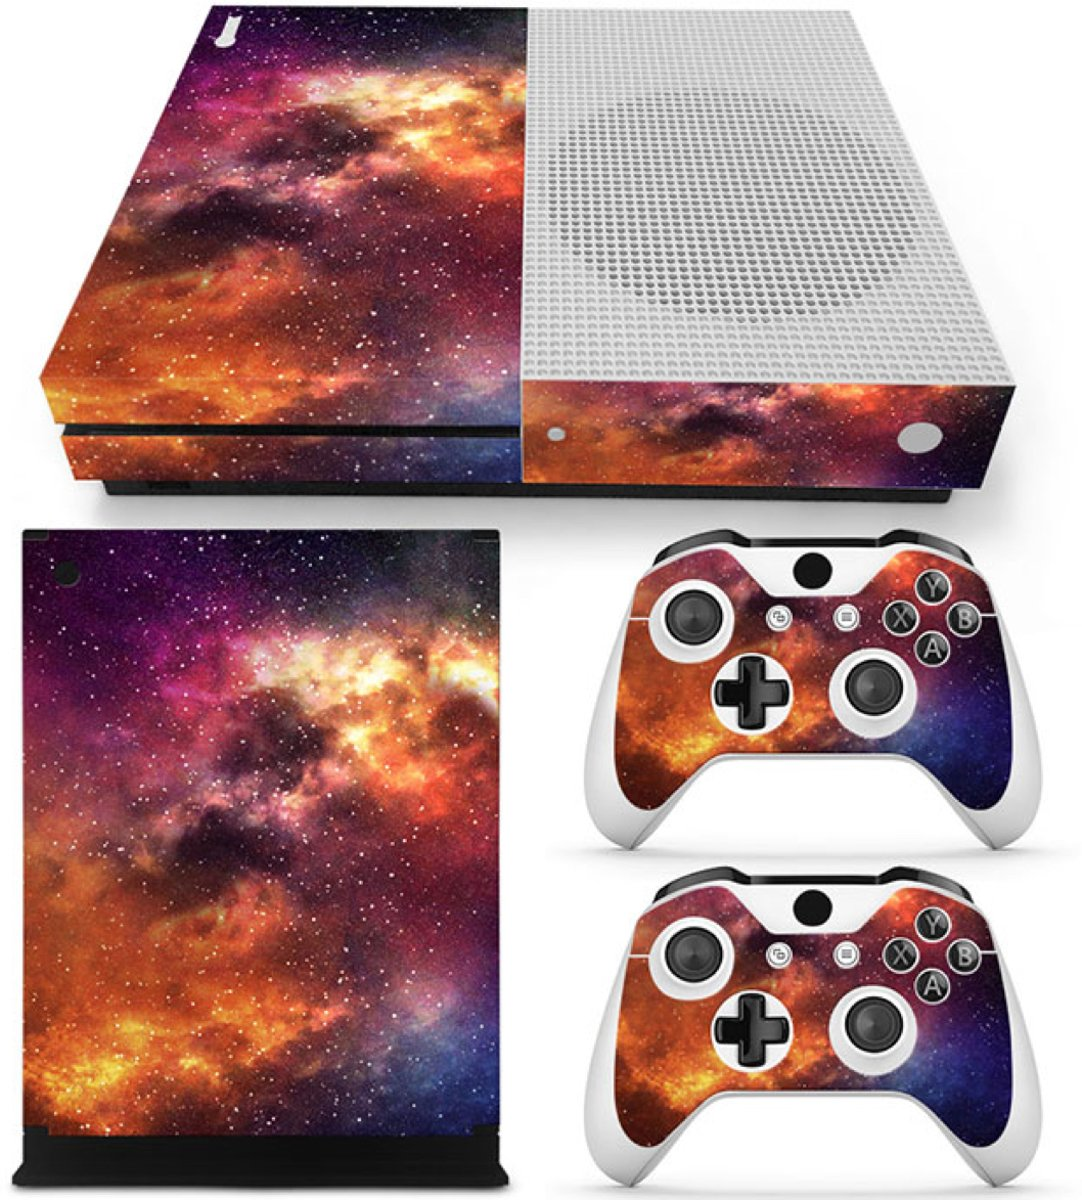 Starry Sky - Xbox One S Console Skins Stickers